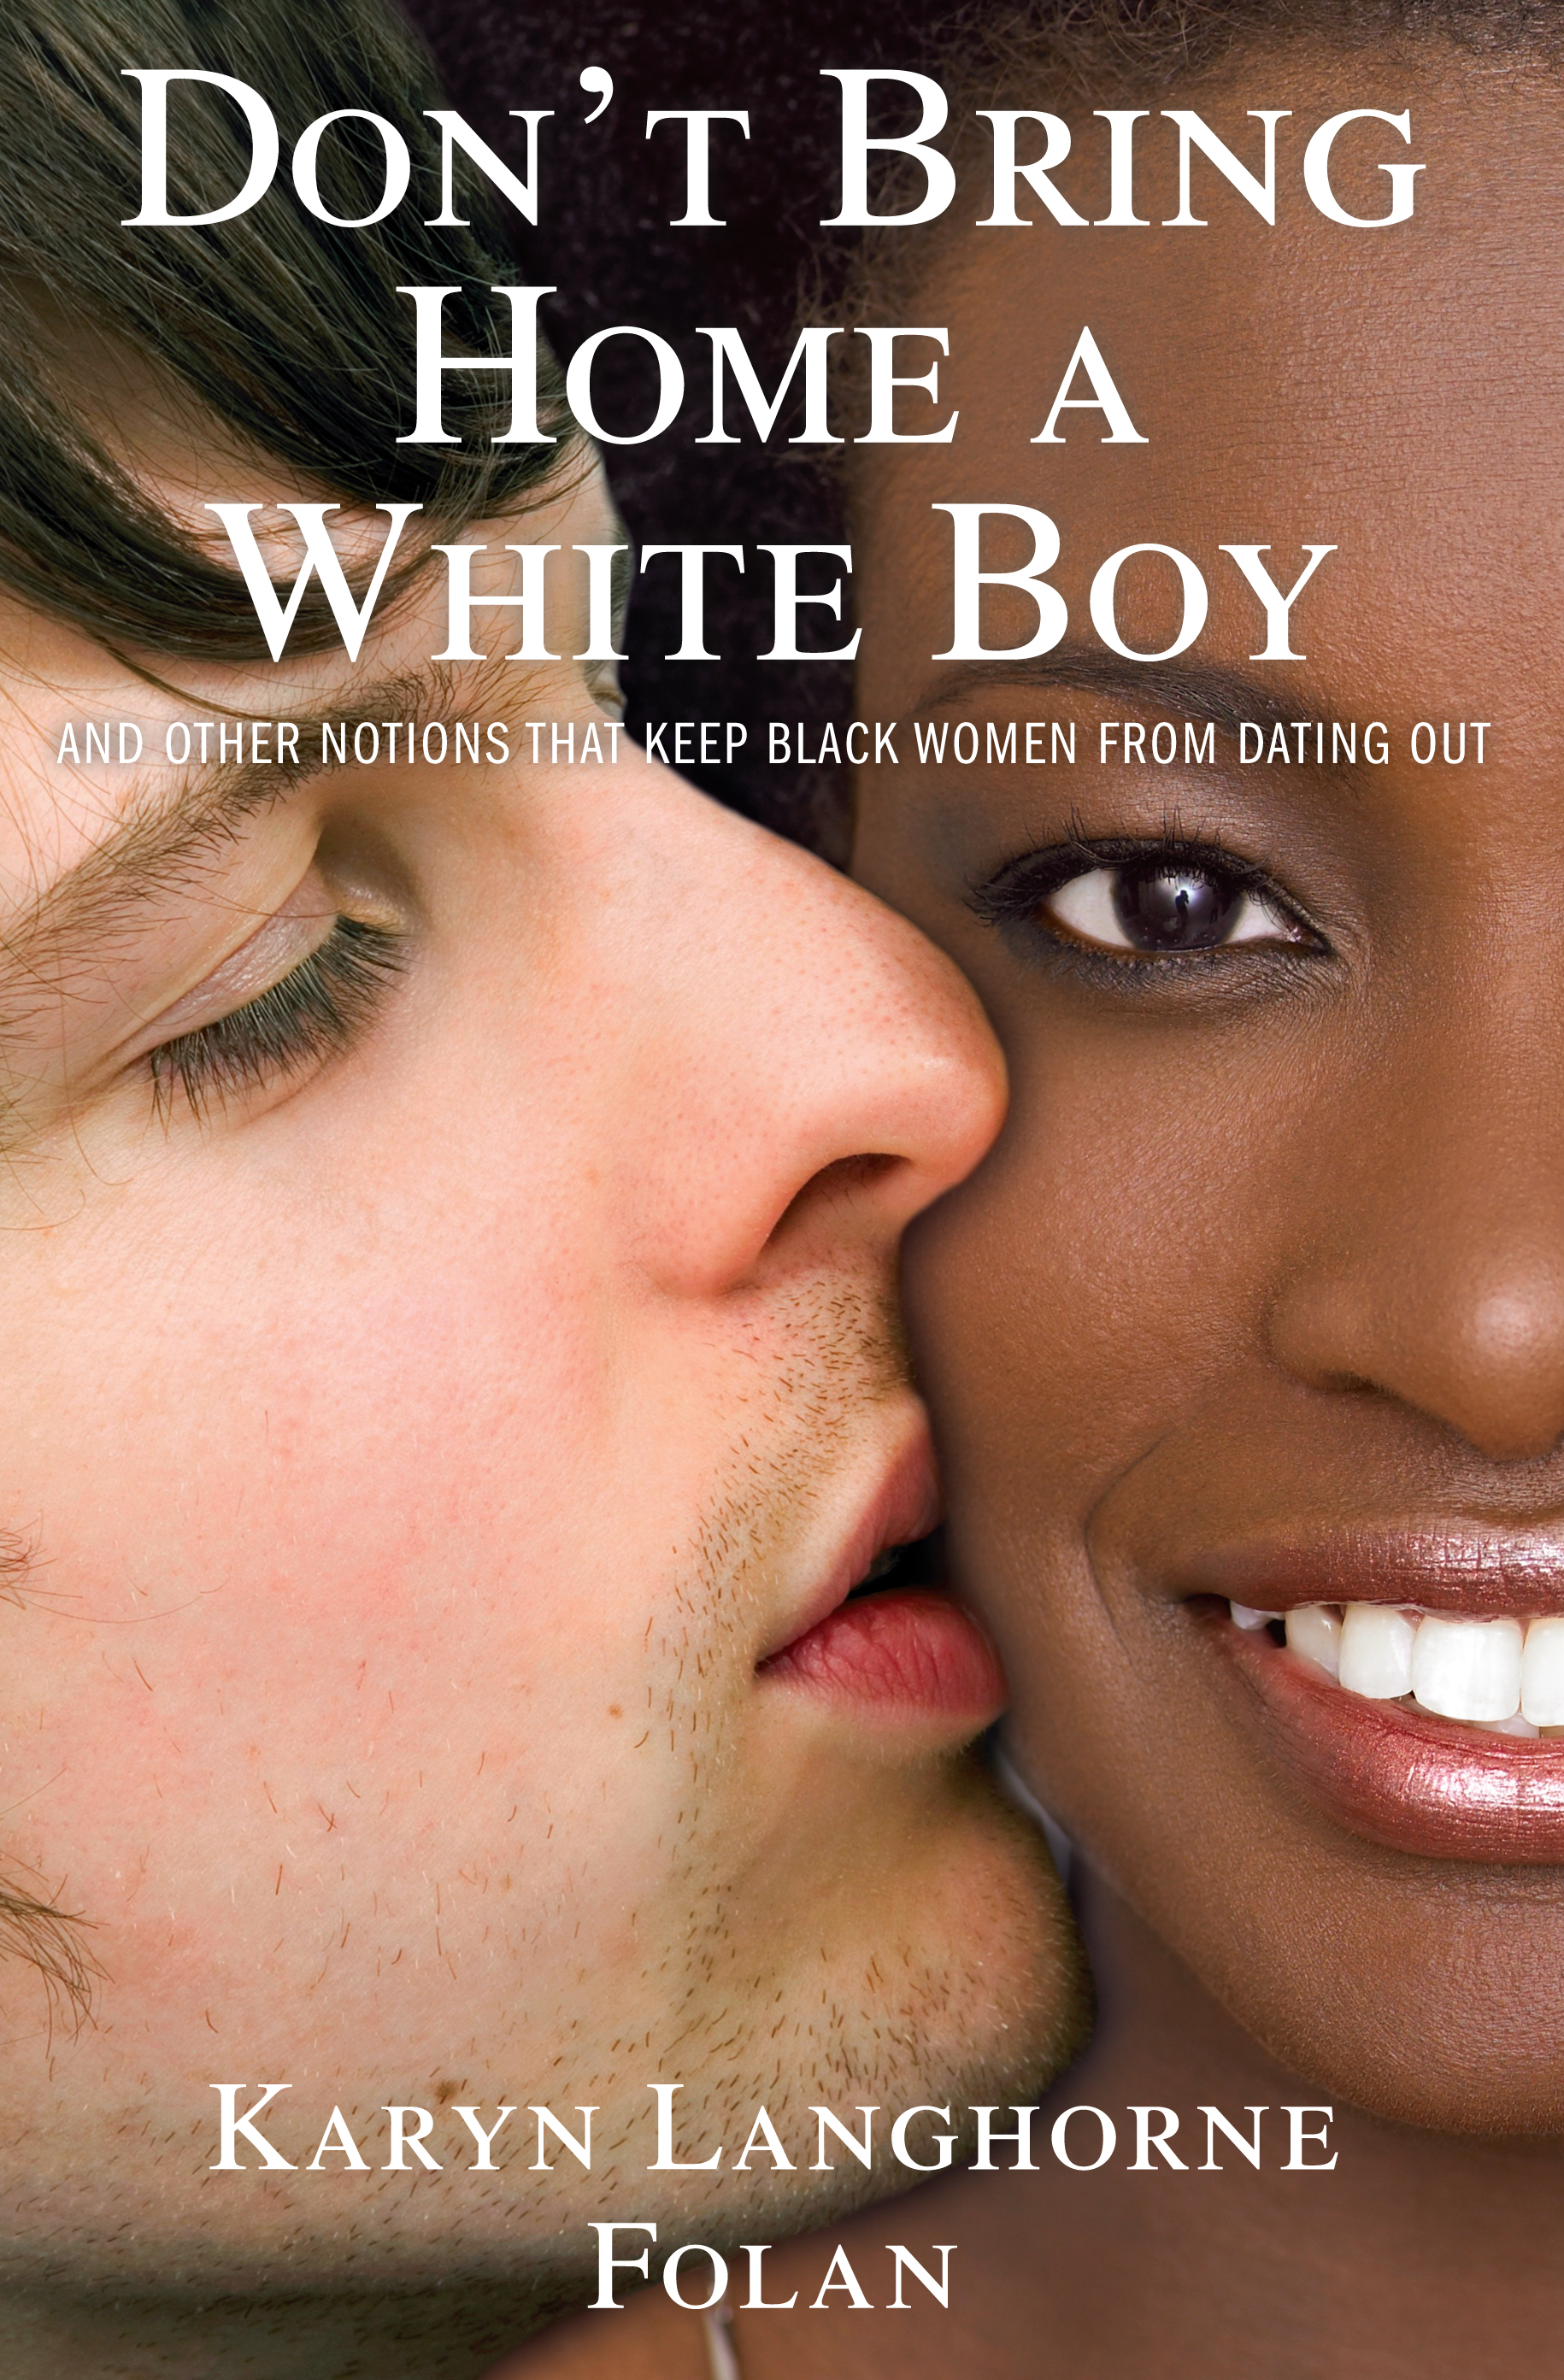 Black girls prefer white guys